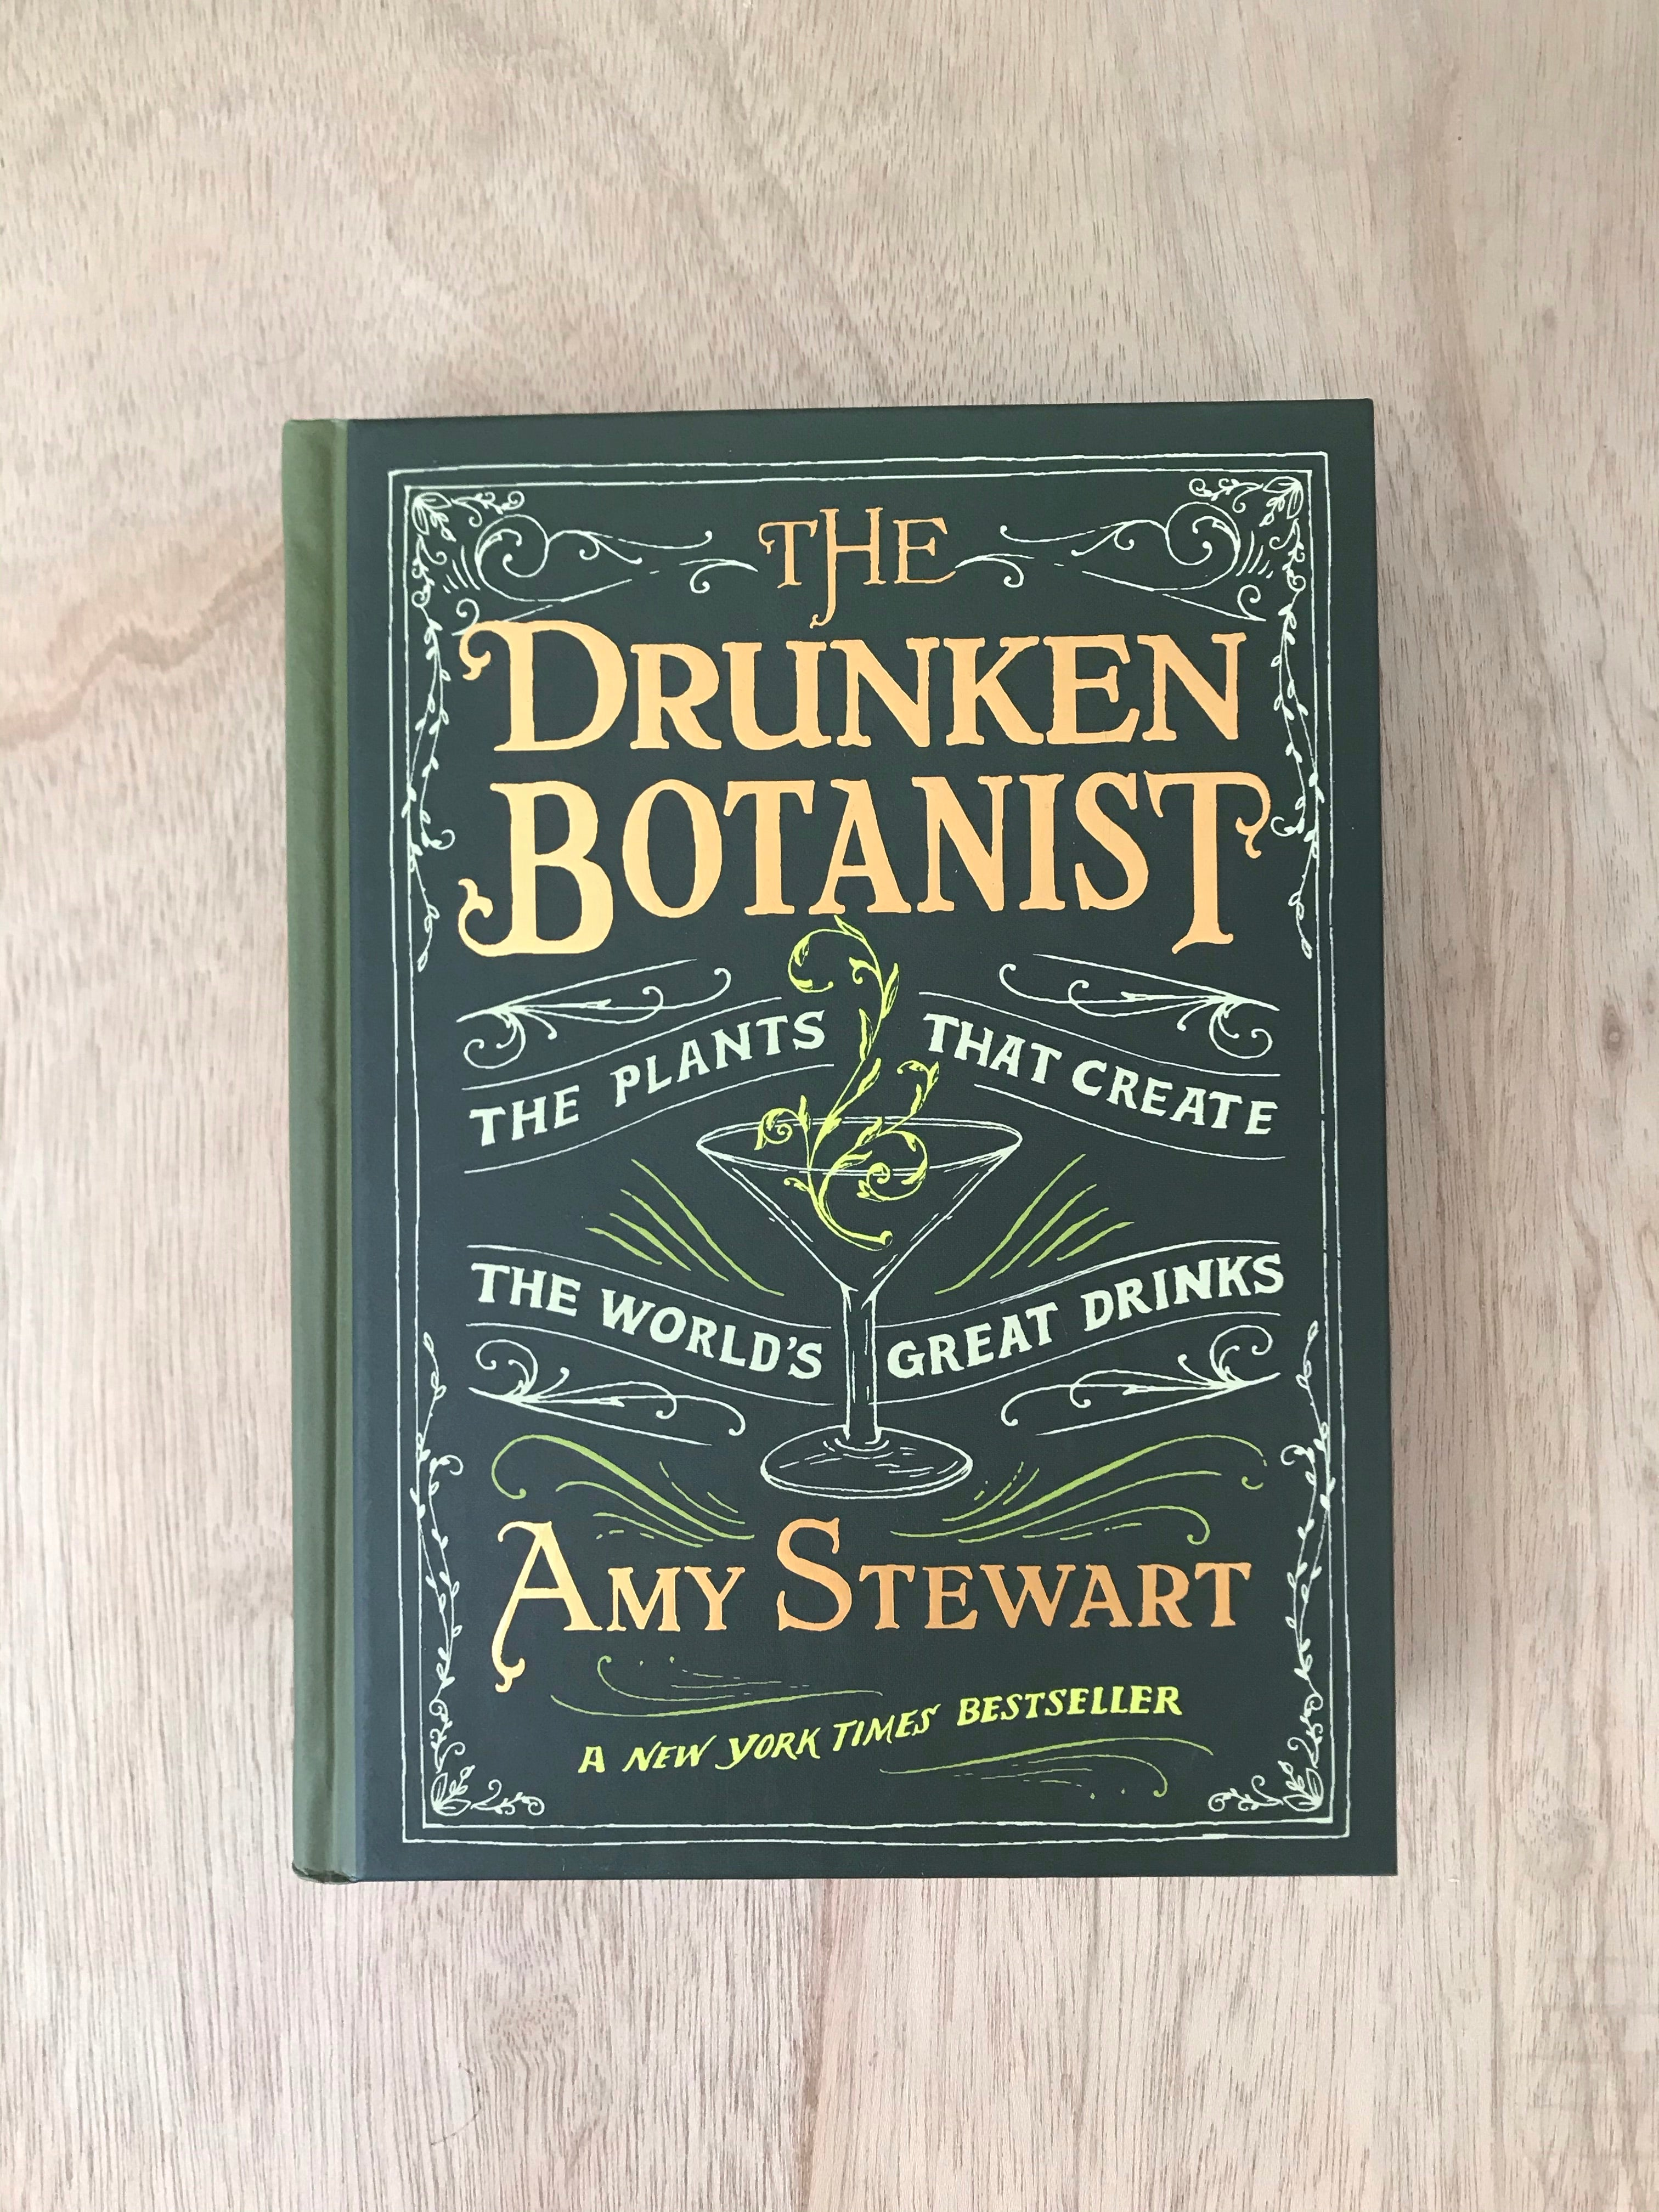 The Drunken Botanist by Amy Steeart